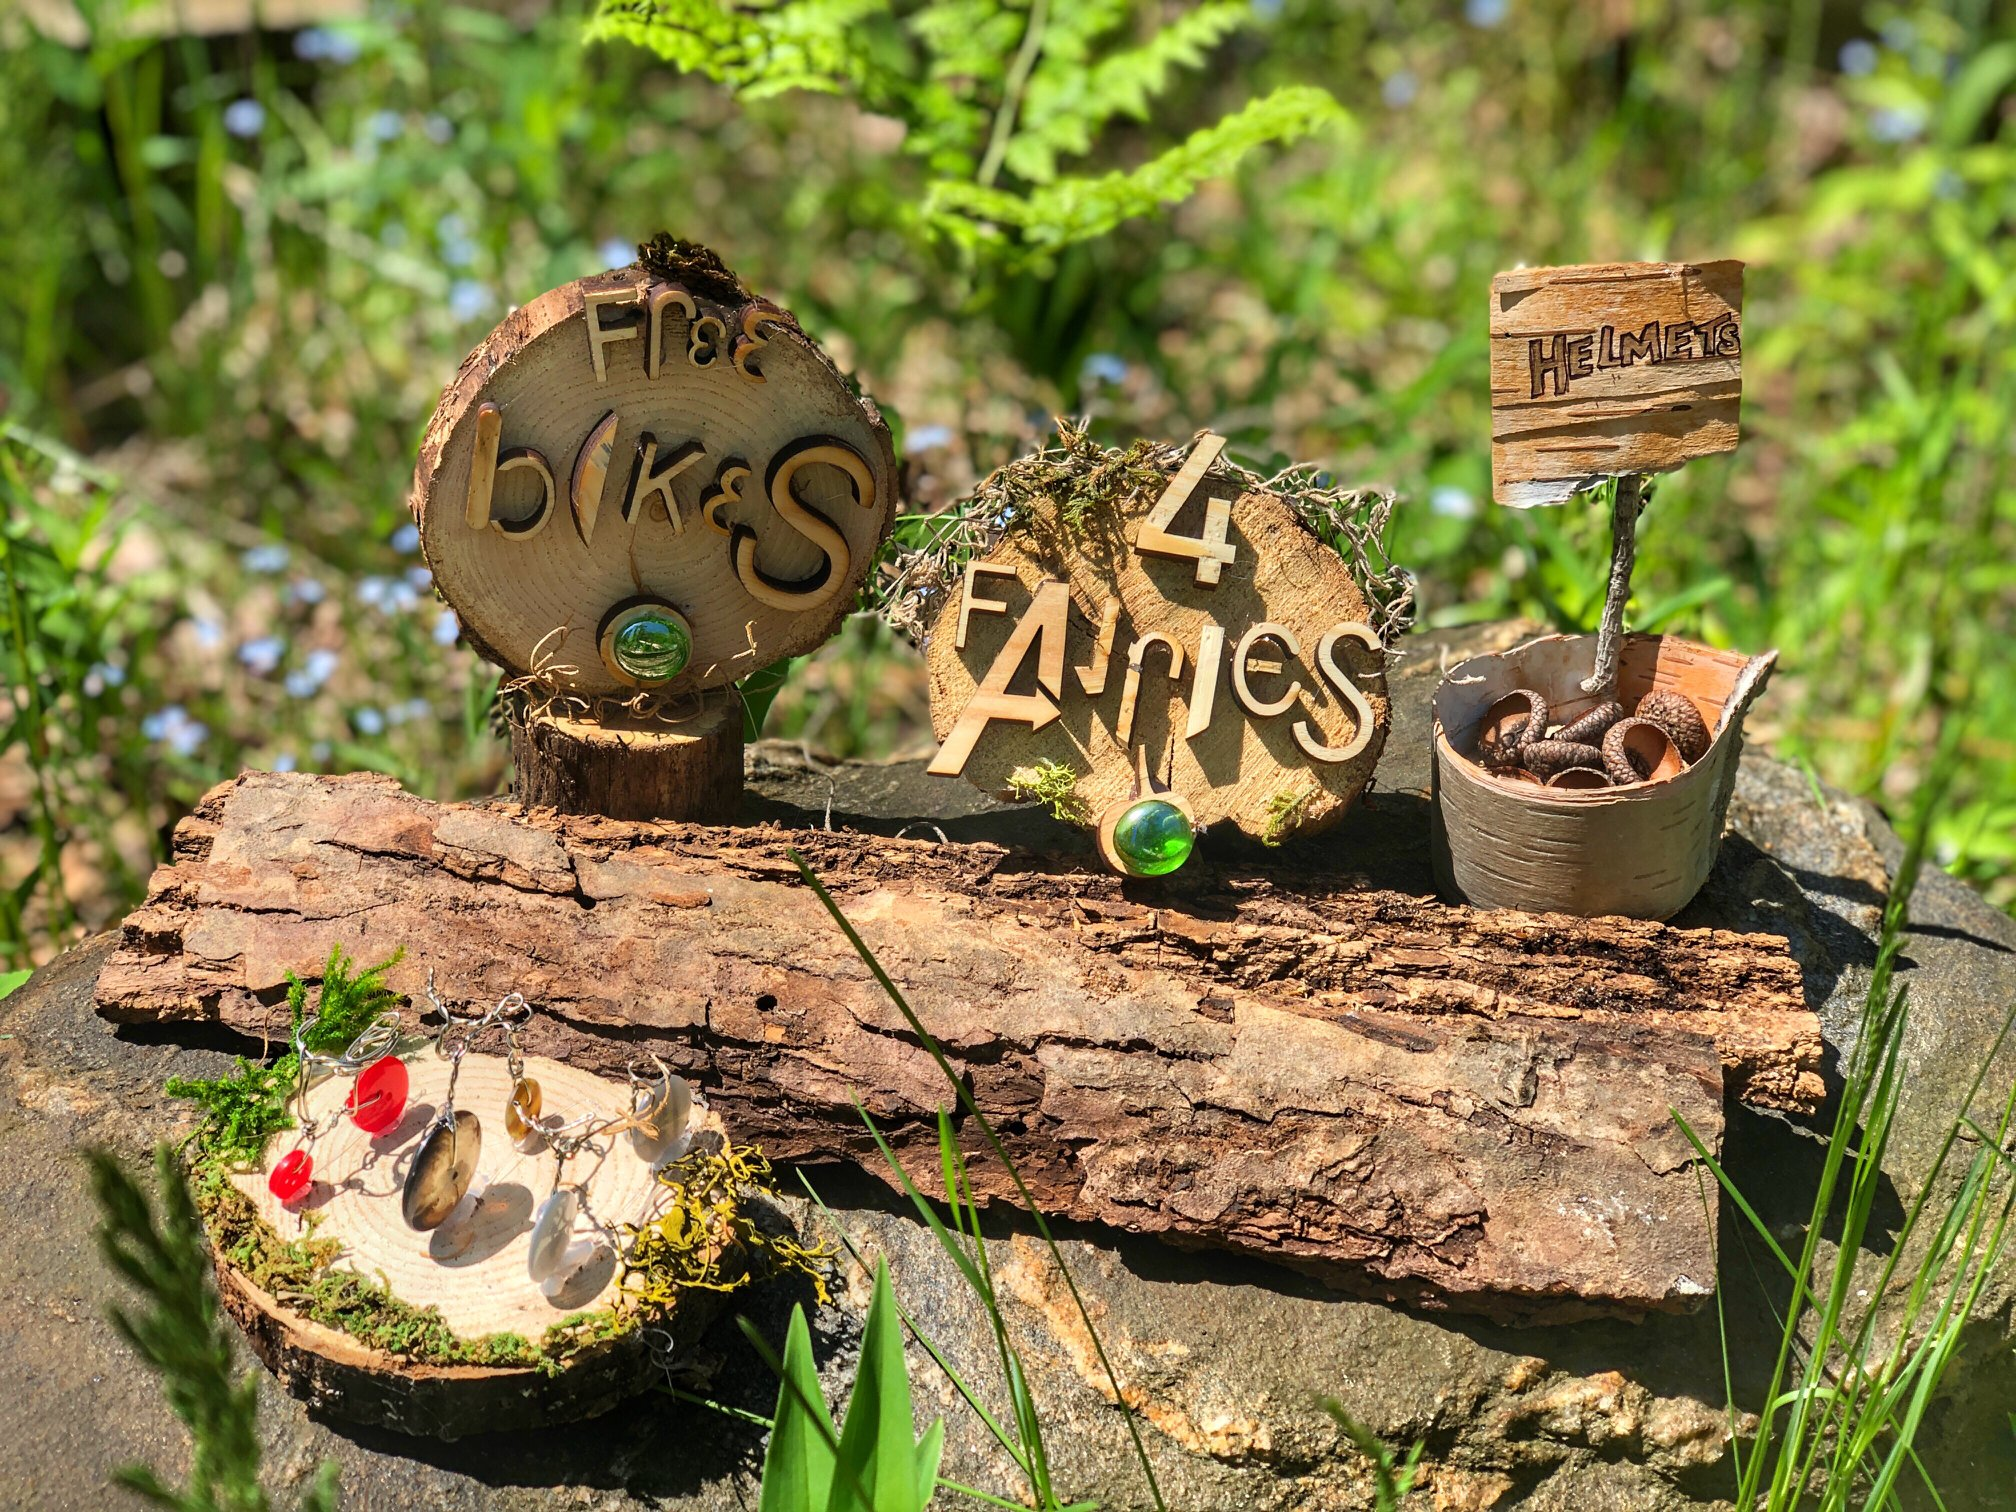 build fairy houses: pop up free art things to do